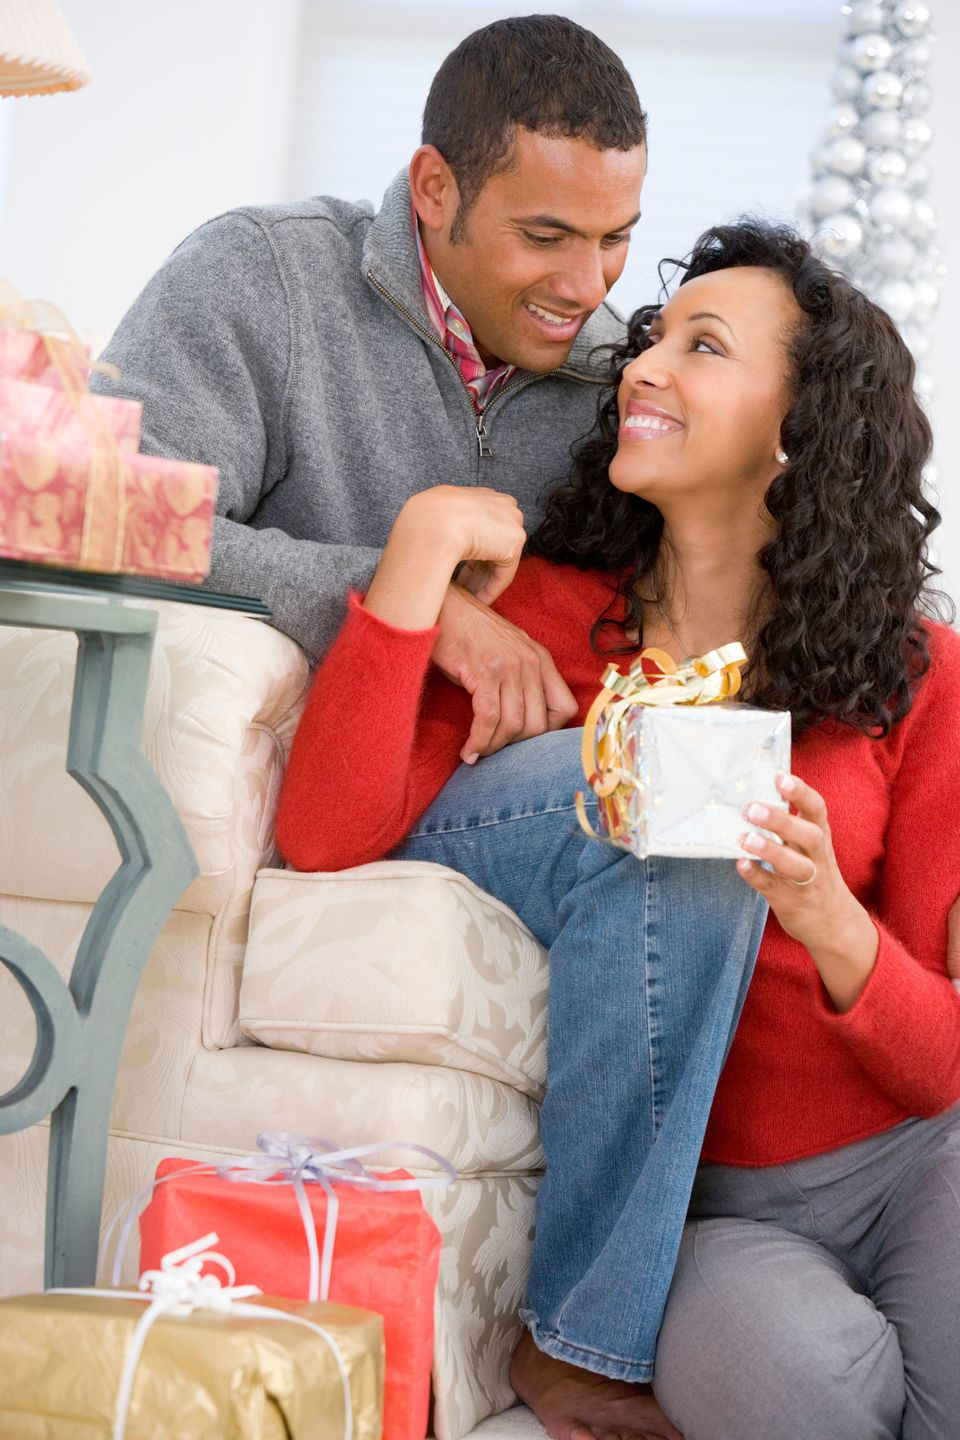 How much will you spend on your significant other this year? Eighty-three percent of couples plan on giving each other gifts